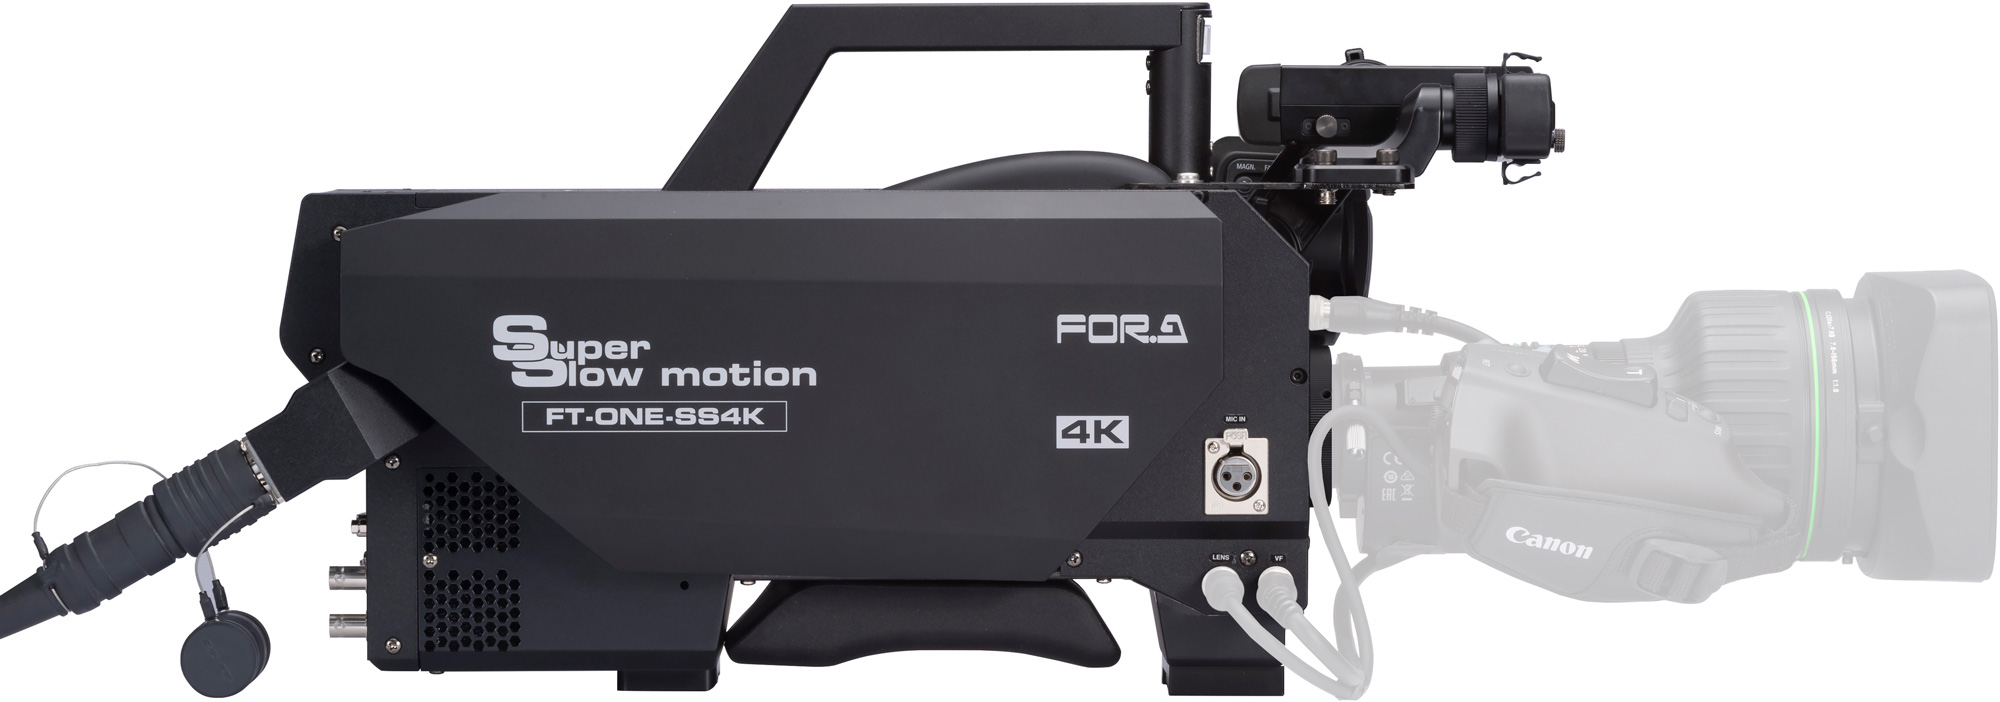 FOR-A FT-ONE-SS4K High Speed Full 4K Super Slow Motion Camera (Lens NOT Included) FT-ONE-SS4K